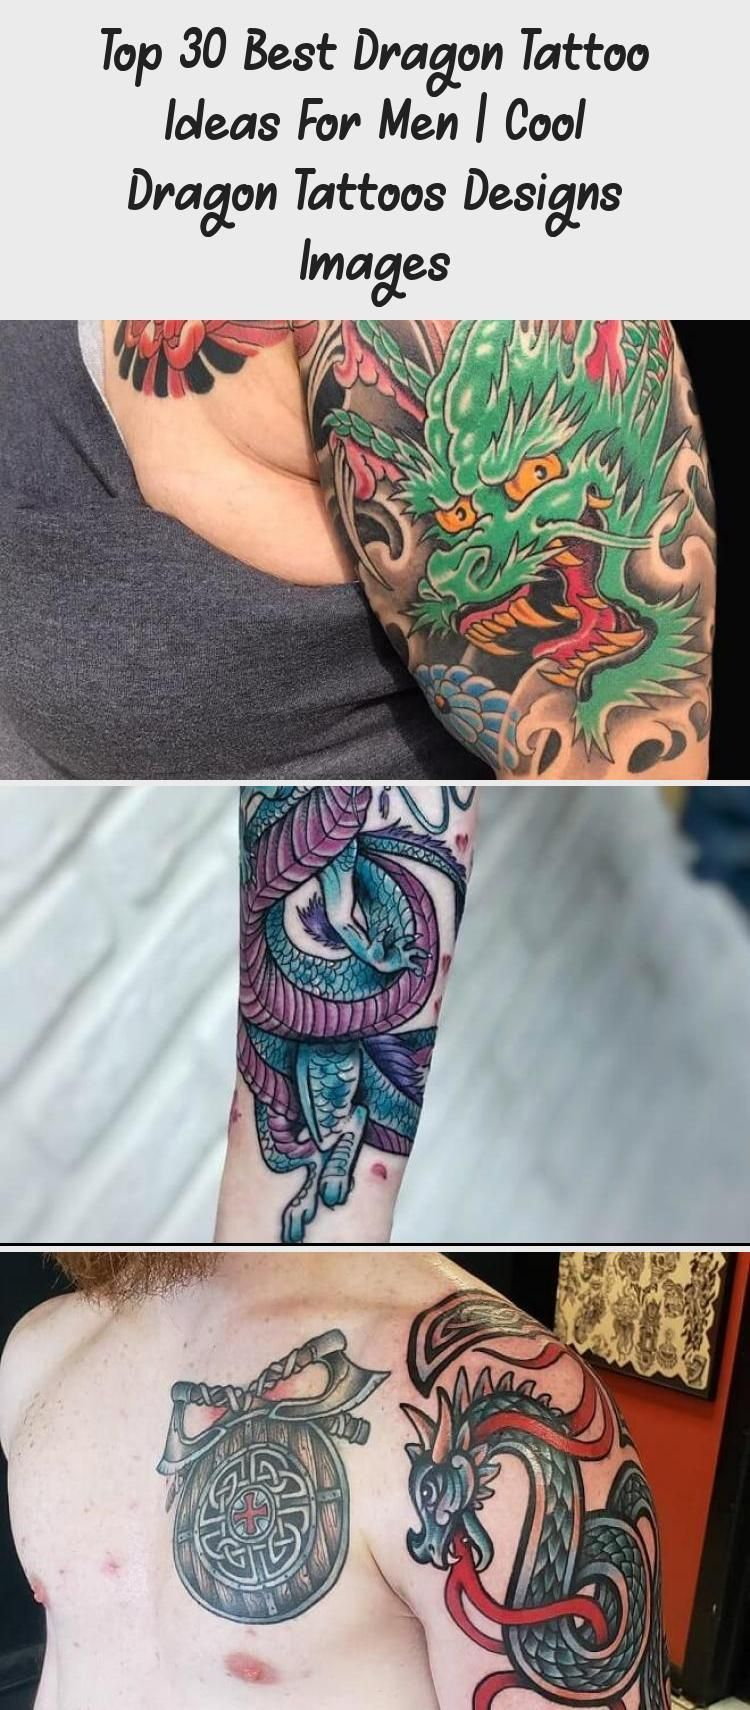 Photo of Flying Dragon Tattoo on Arm – Die 30 besten Tattoo-Ideen für Drachen für Männer | Cooler Drache …